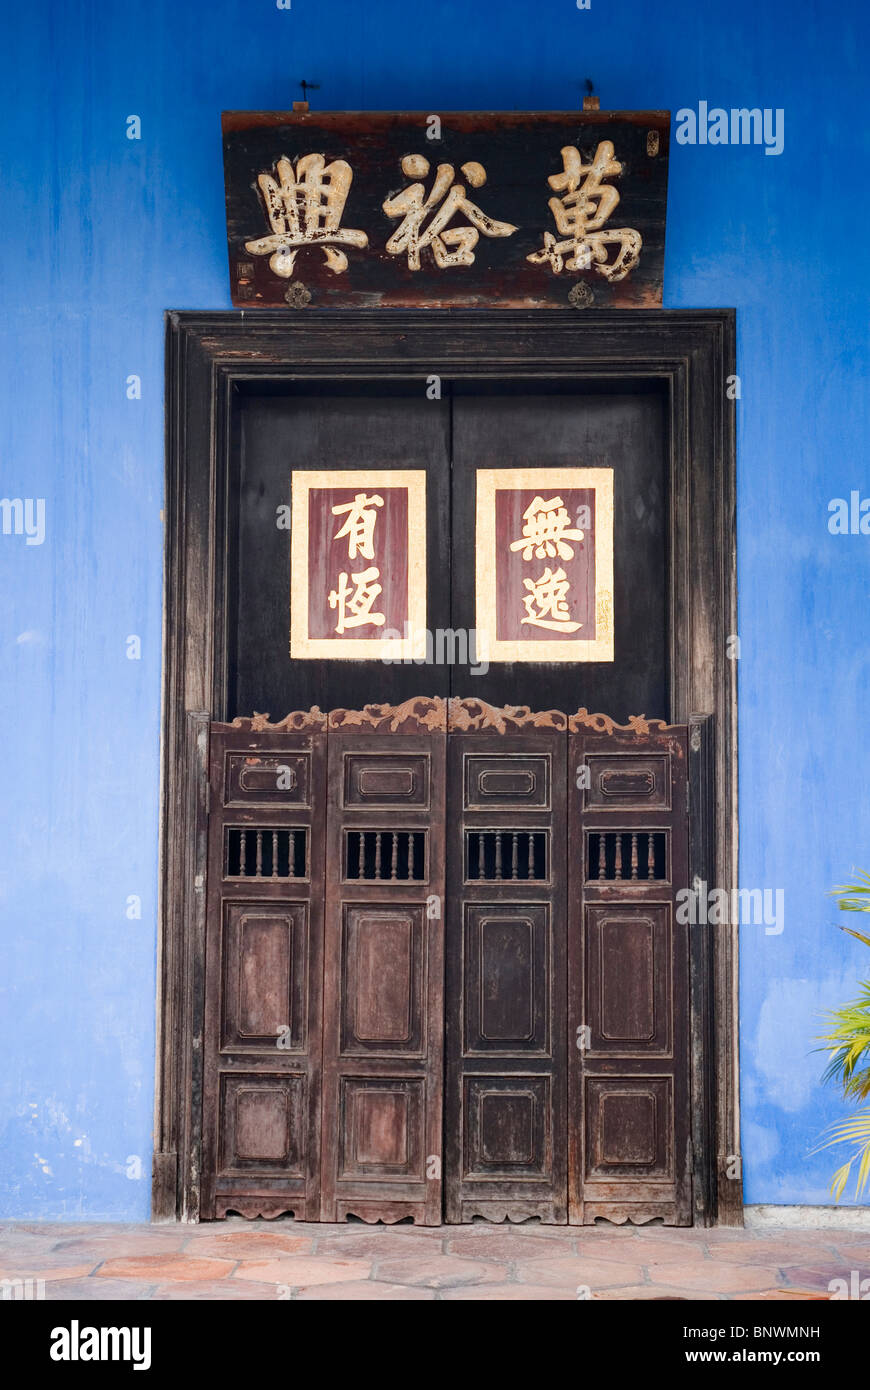 Chinese script on door at Chong Fatt Tze Mansion - Stock Image